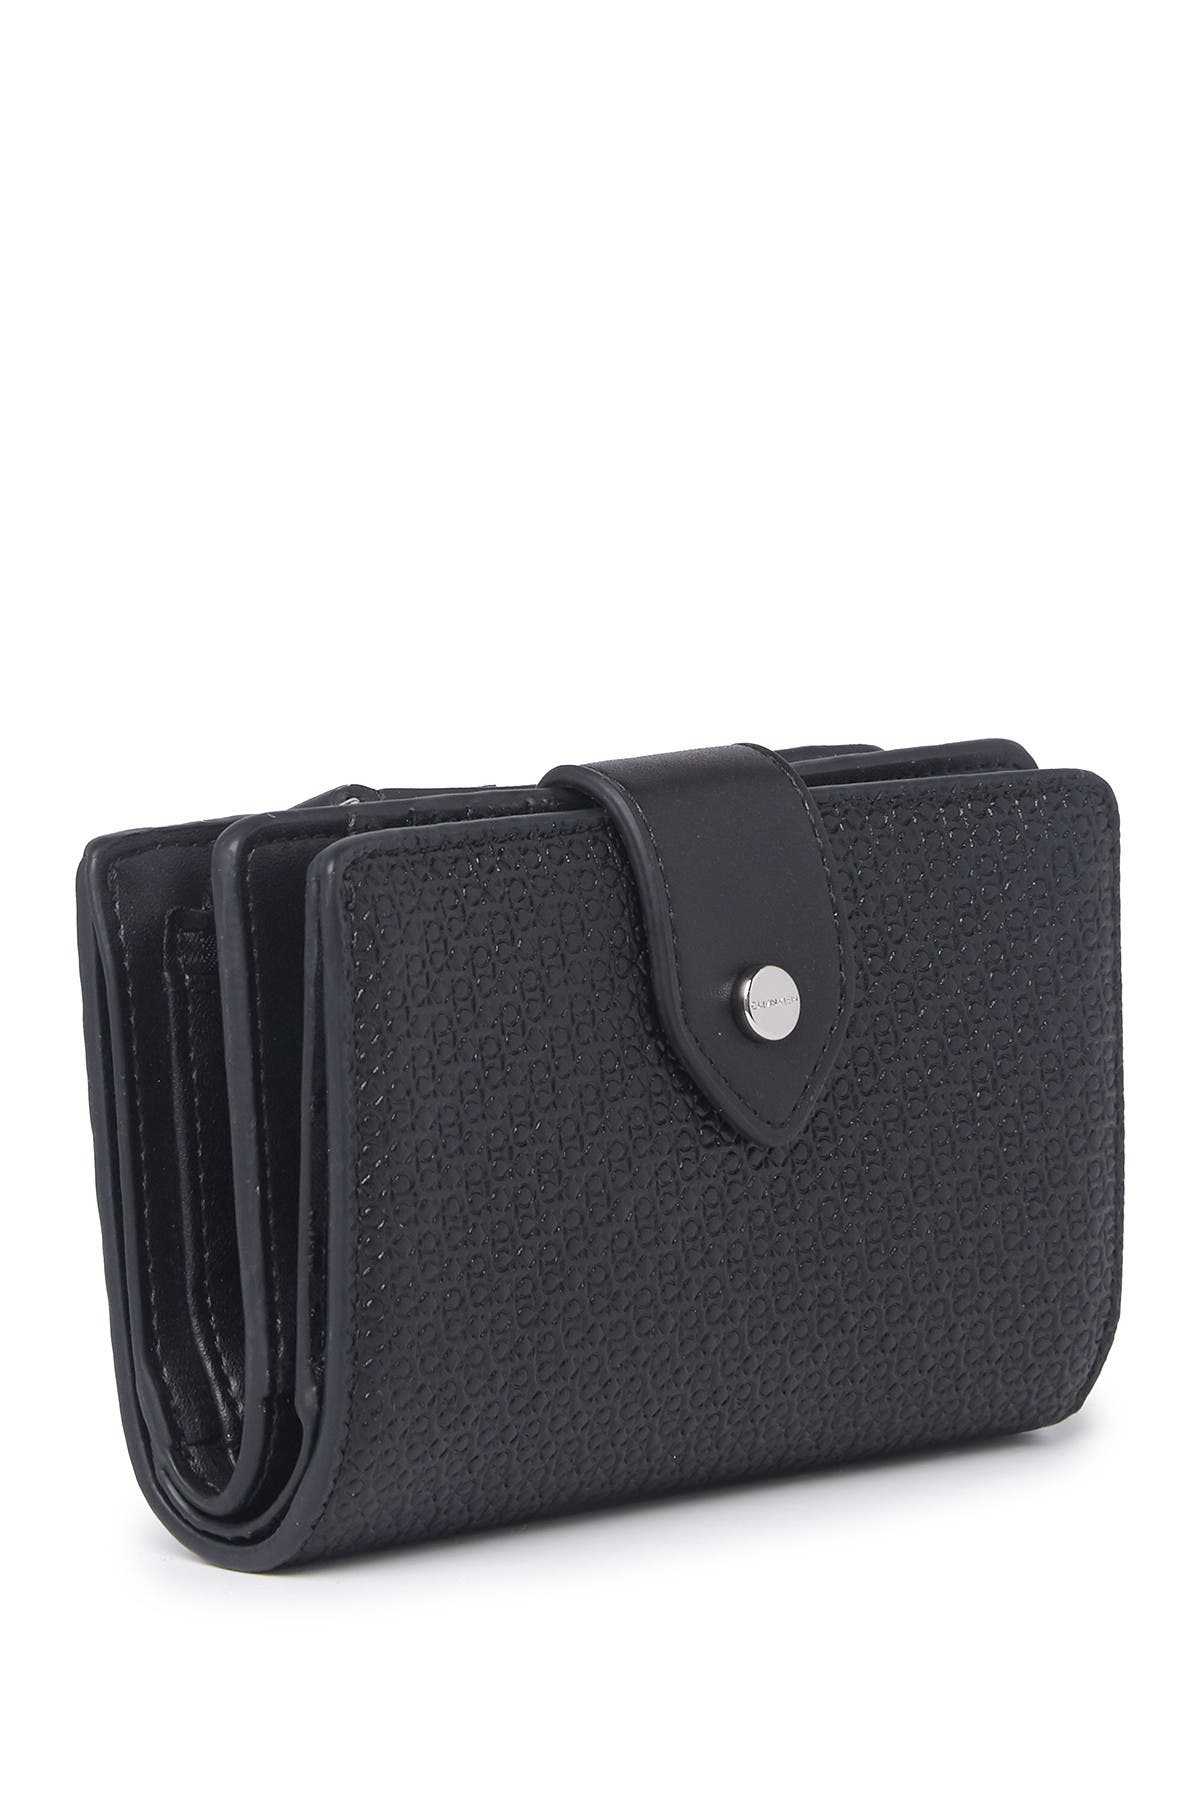 Image of Calvin Klein CK Embossed Small Wallet